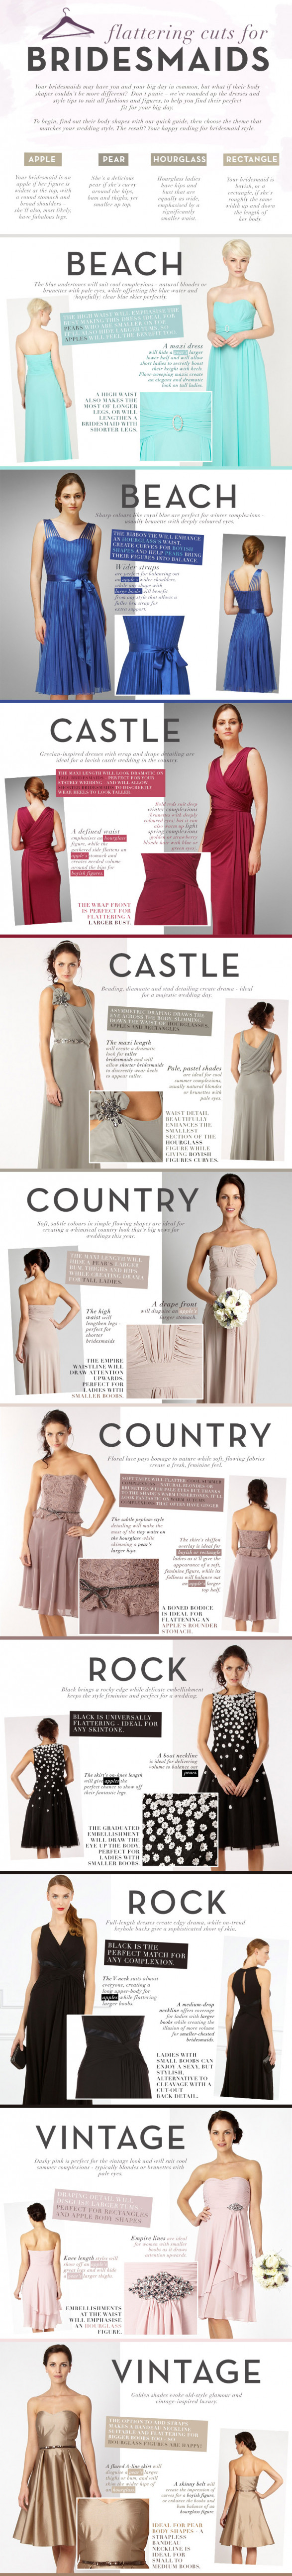 Flattering cuts for Bridesmaids